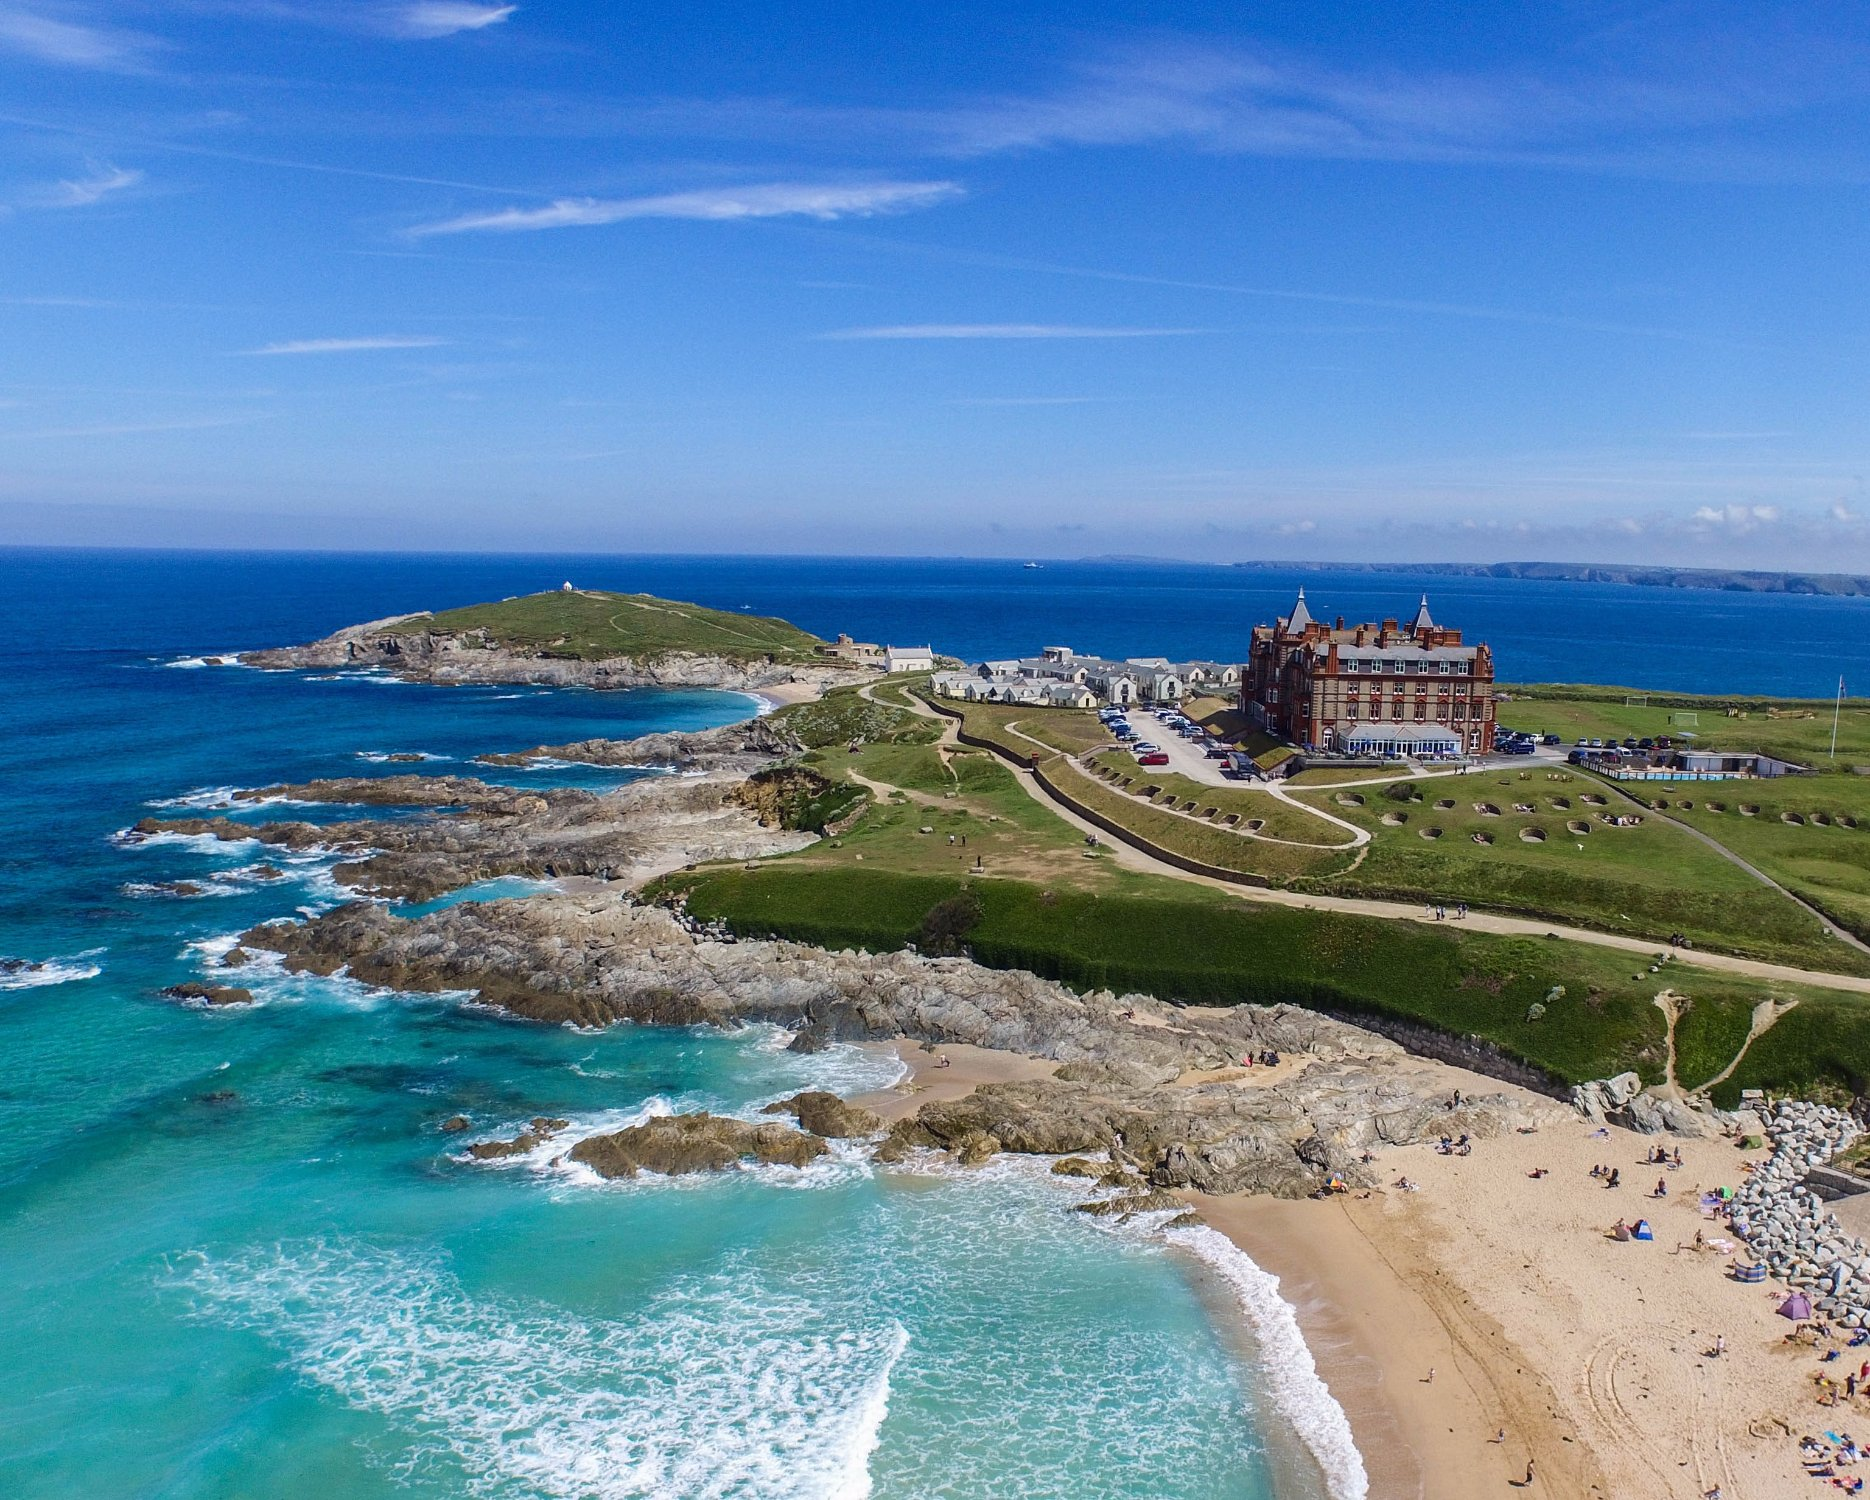 The Headland Hotel & Spa - Newquay